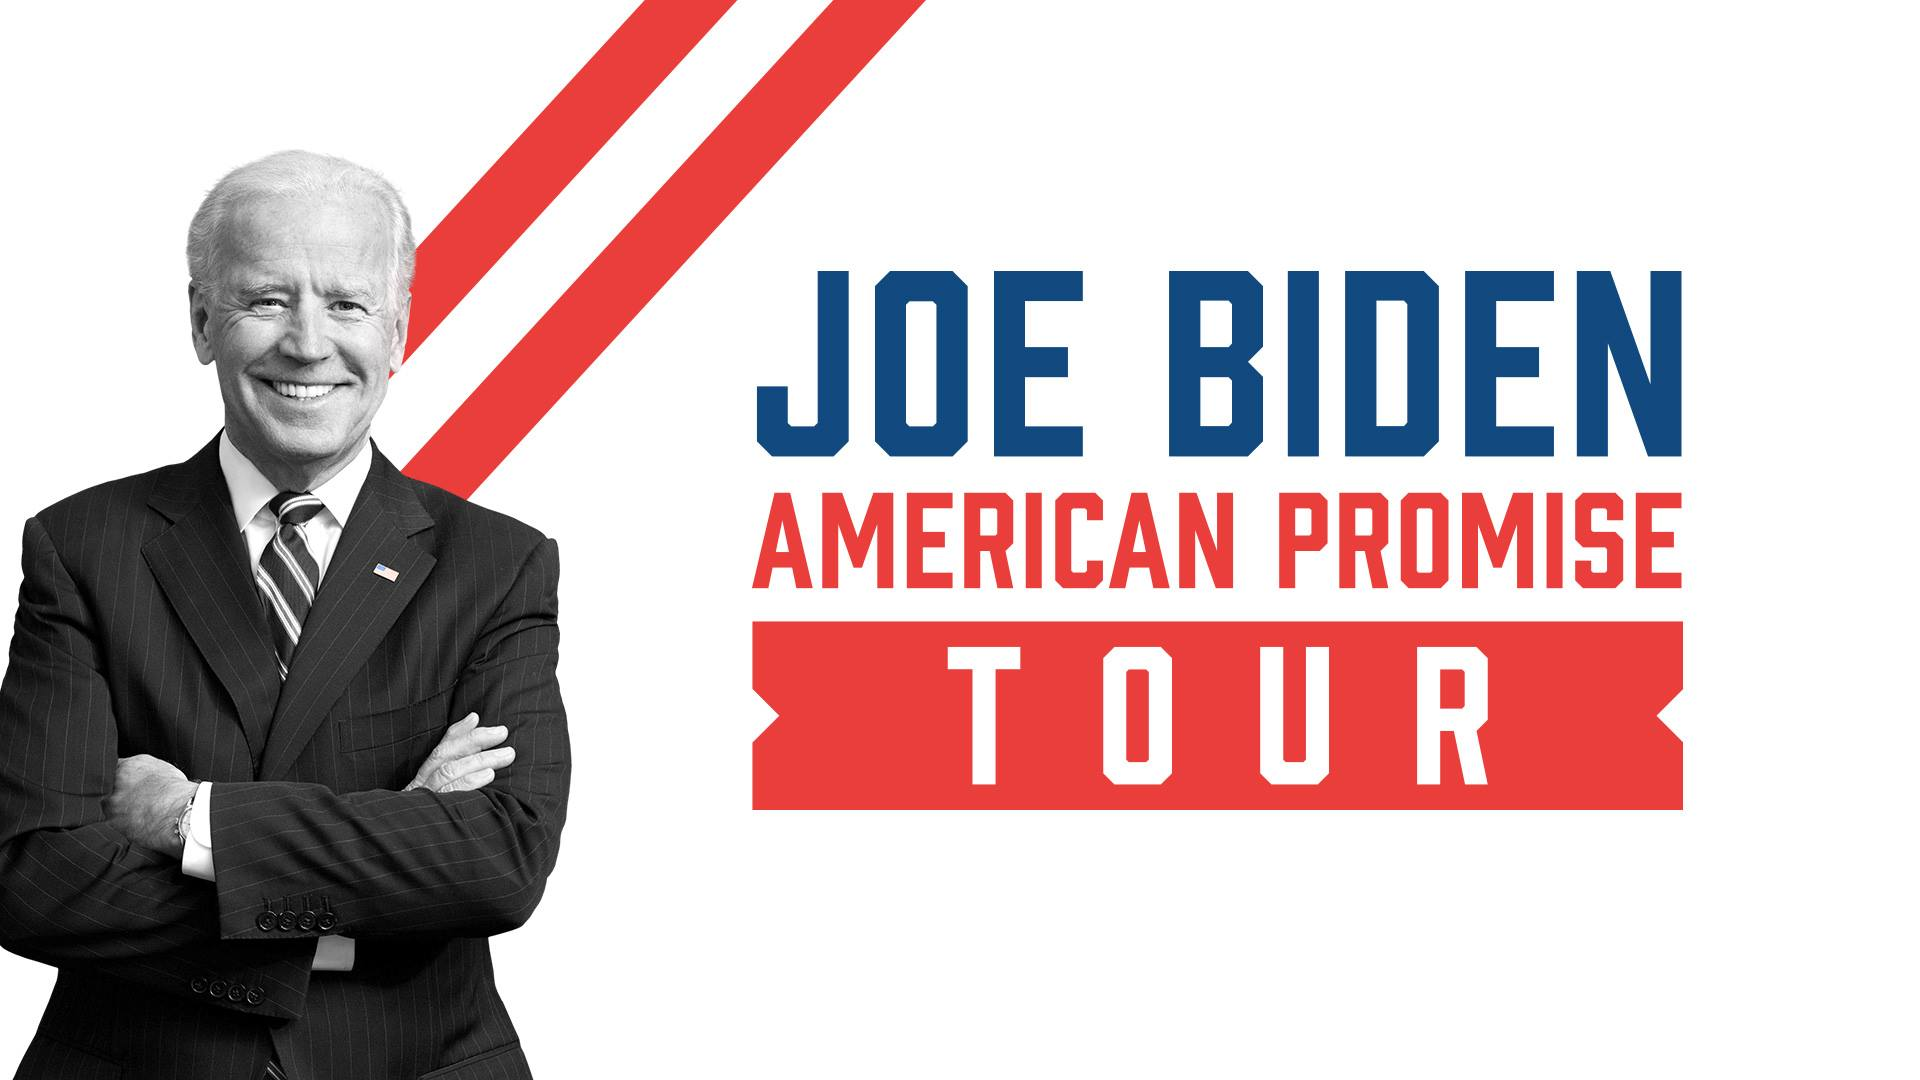 Joe Biden's American Promise Tour - The Anthem at The Wharf in Washington, DC